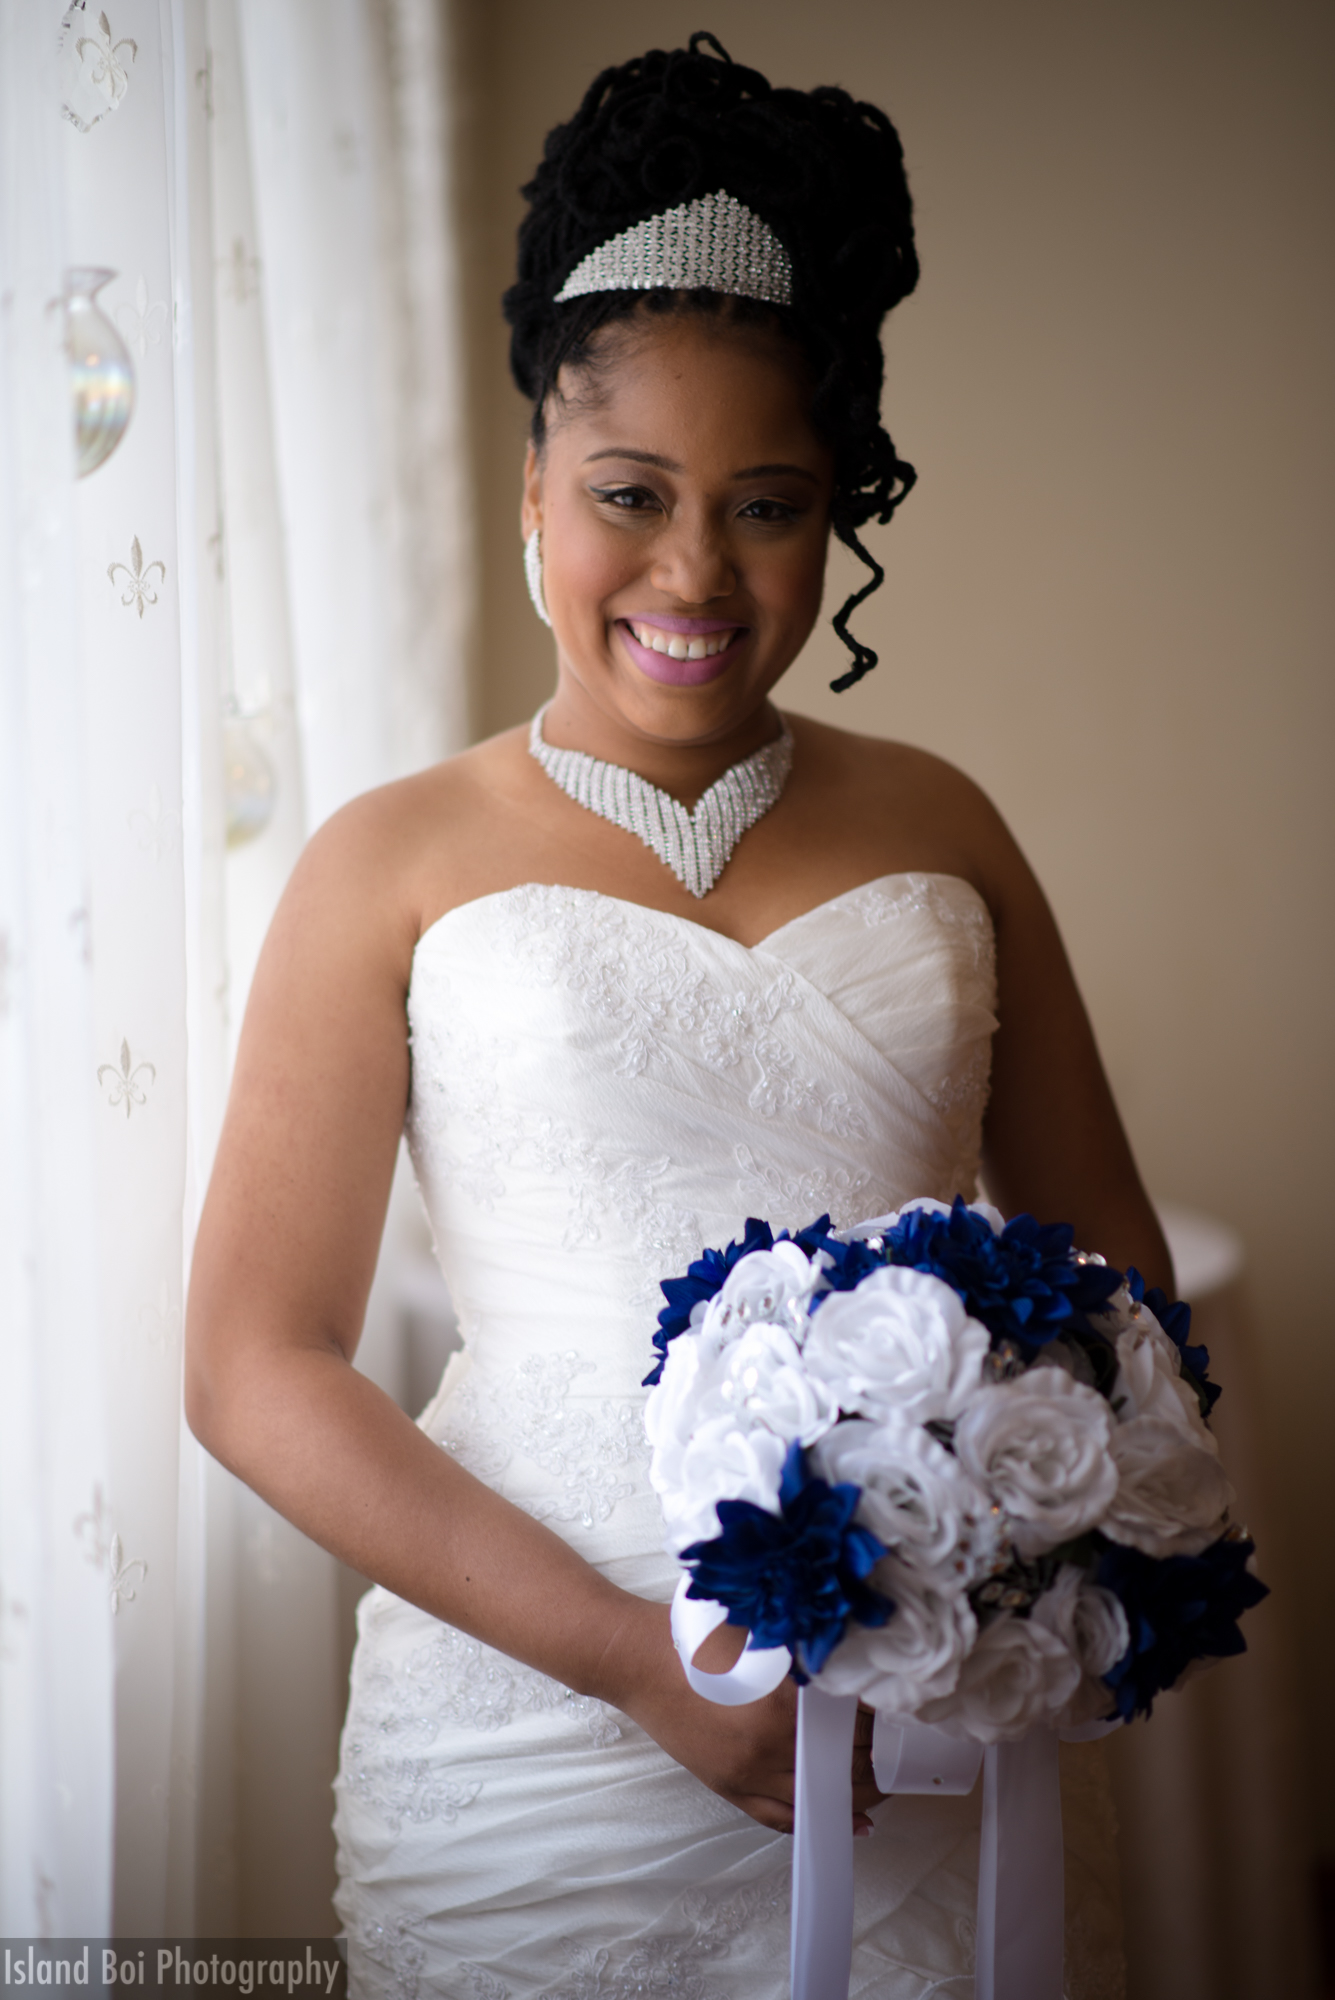 The happy and beautiful bride